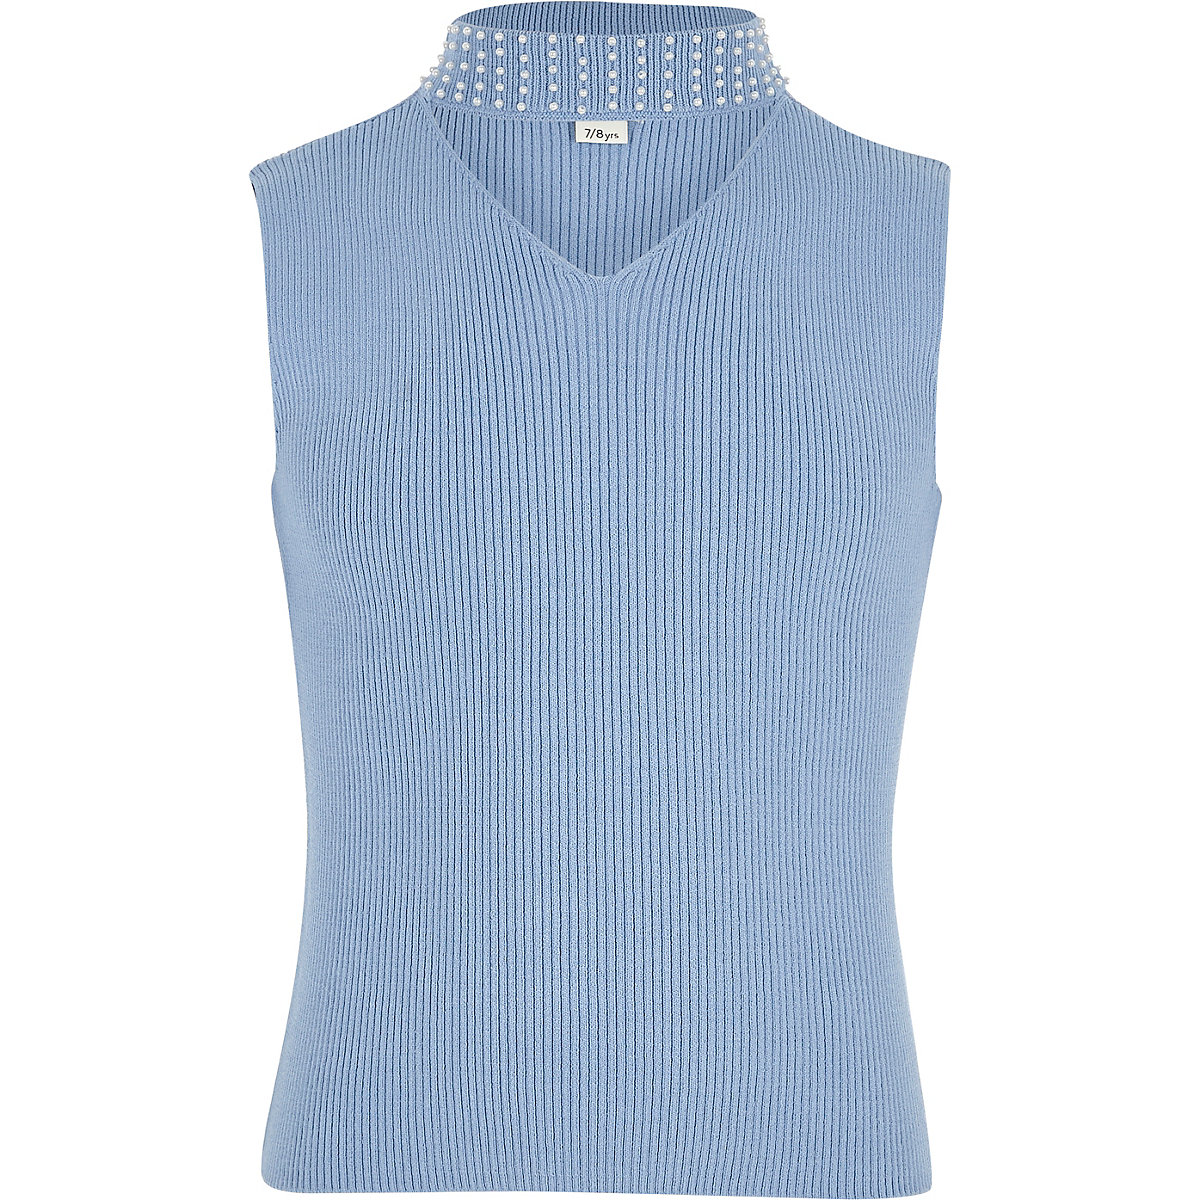 Girls blue rib knit embellished choker top